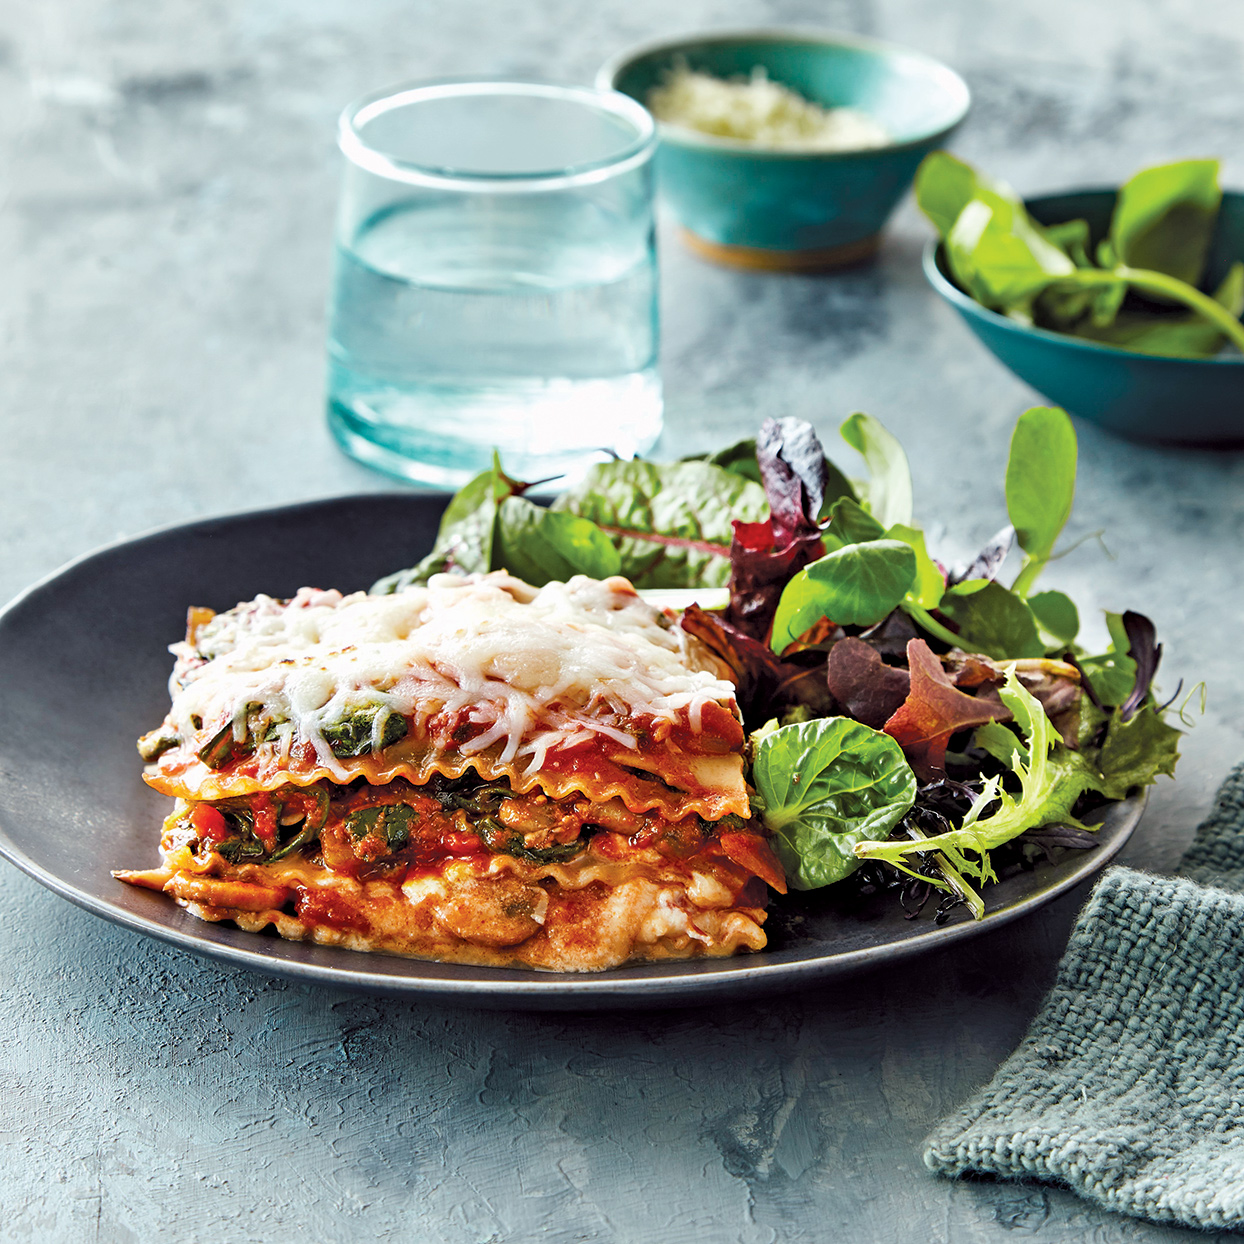 Slow-Cooker Spinach & Mushroom Lasagna Trusted Brands